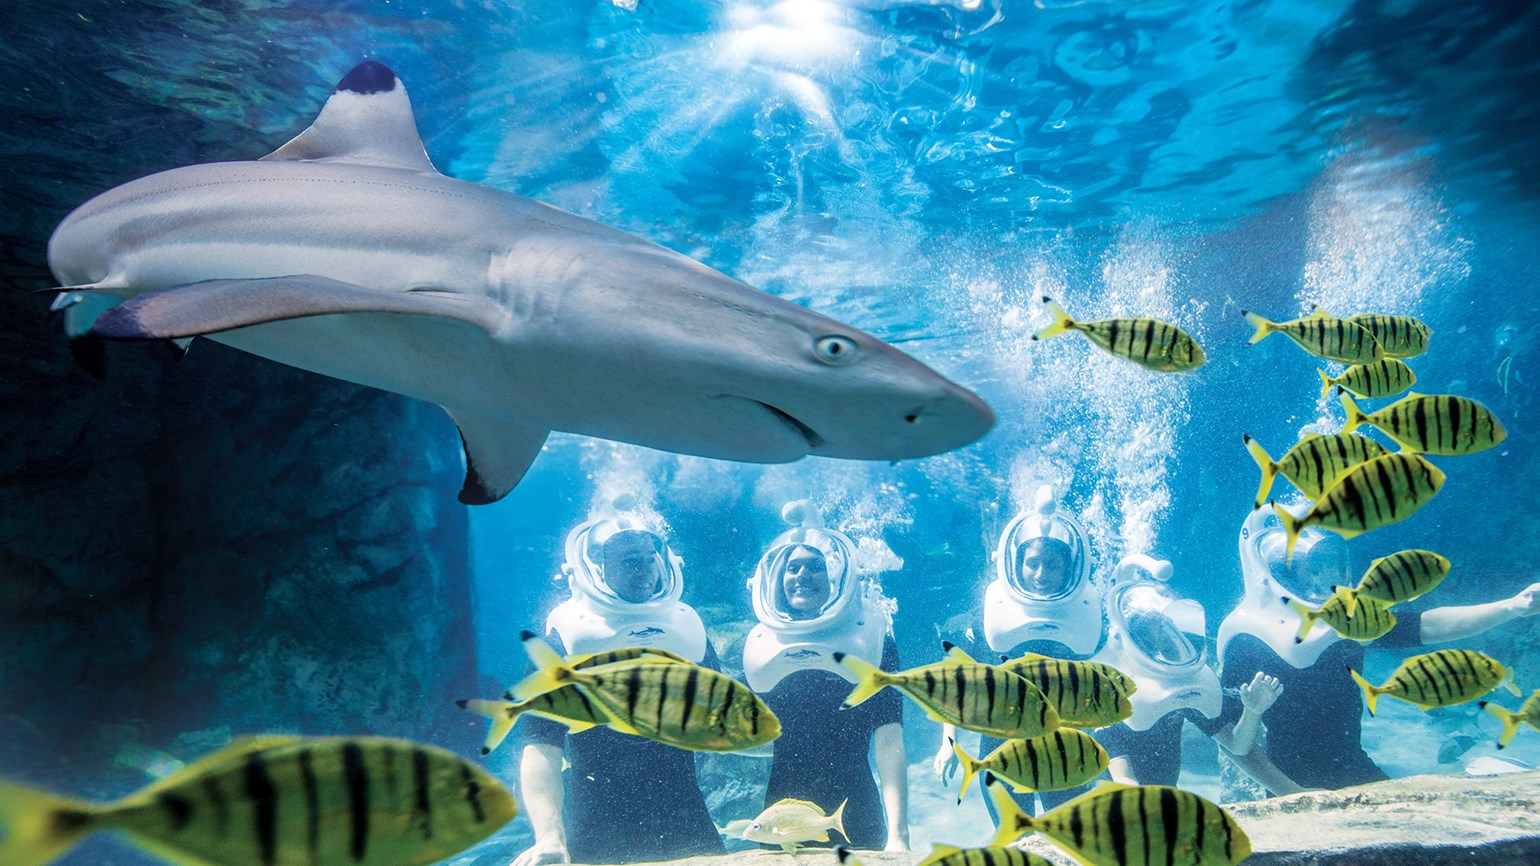 SeaWorld paying 30% commission on Discovery Cove bookings